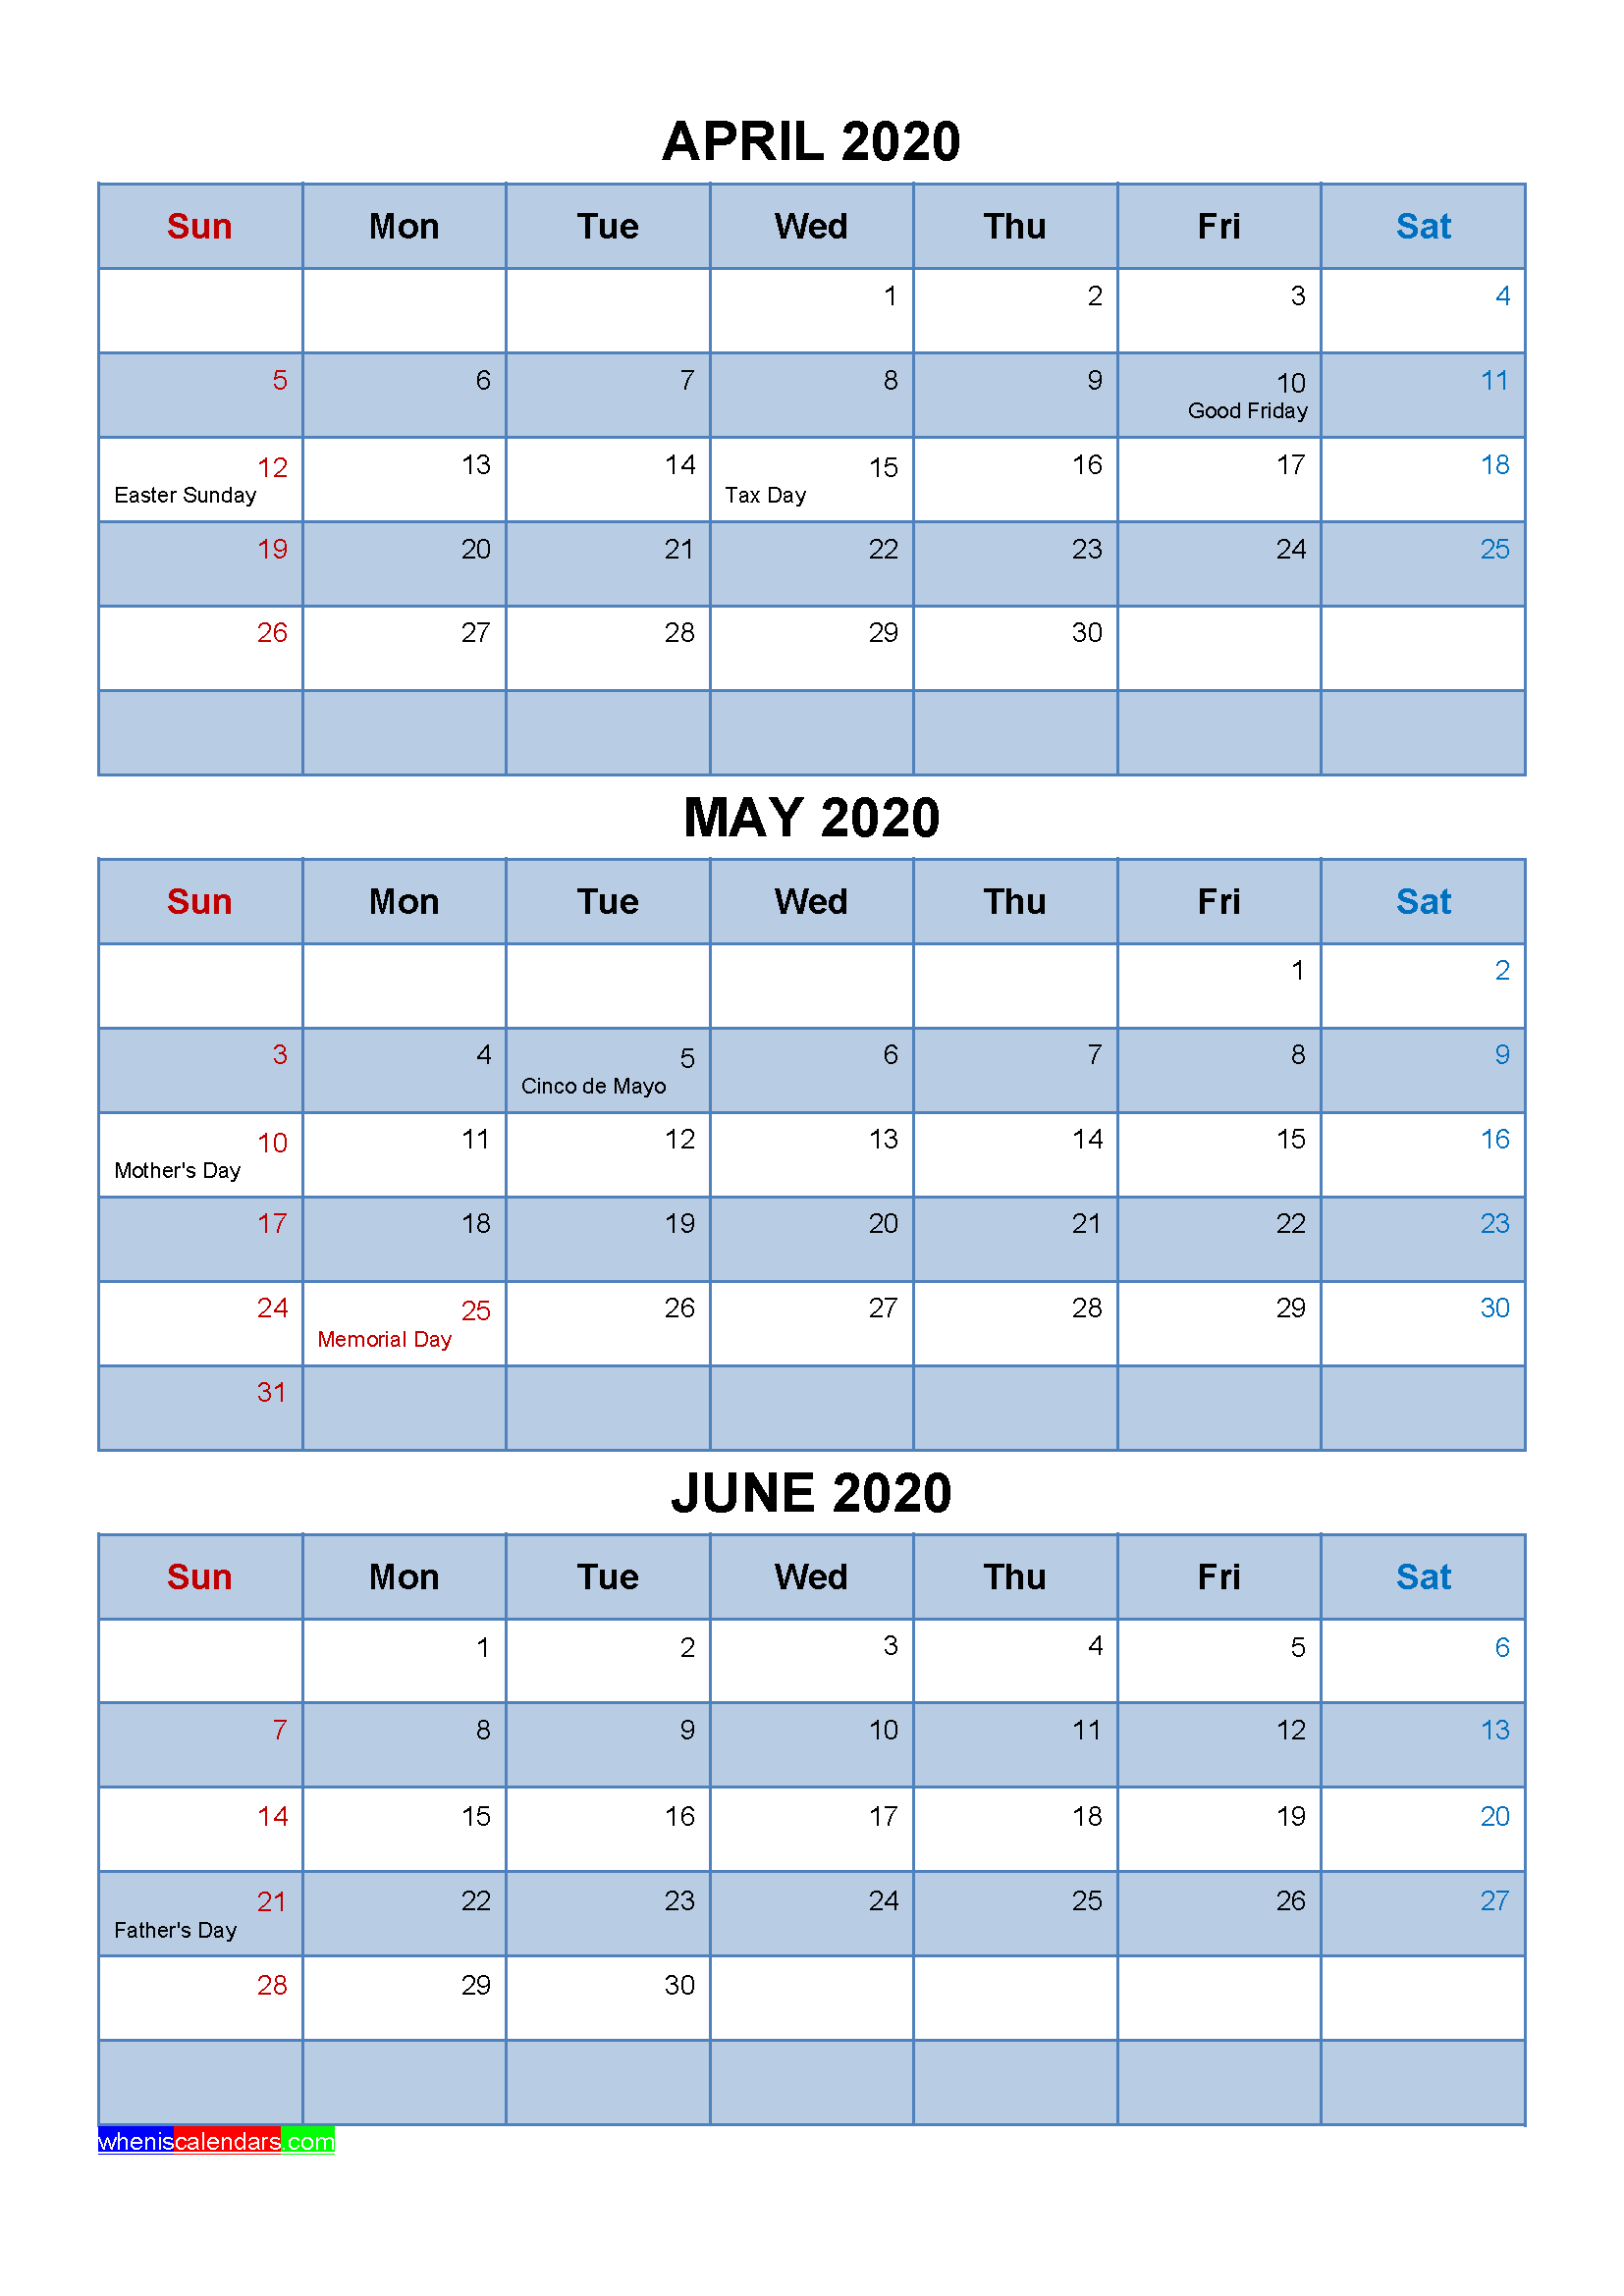 Free Calendar April May June 2020 with Holidays